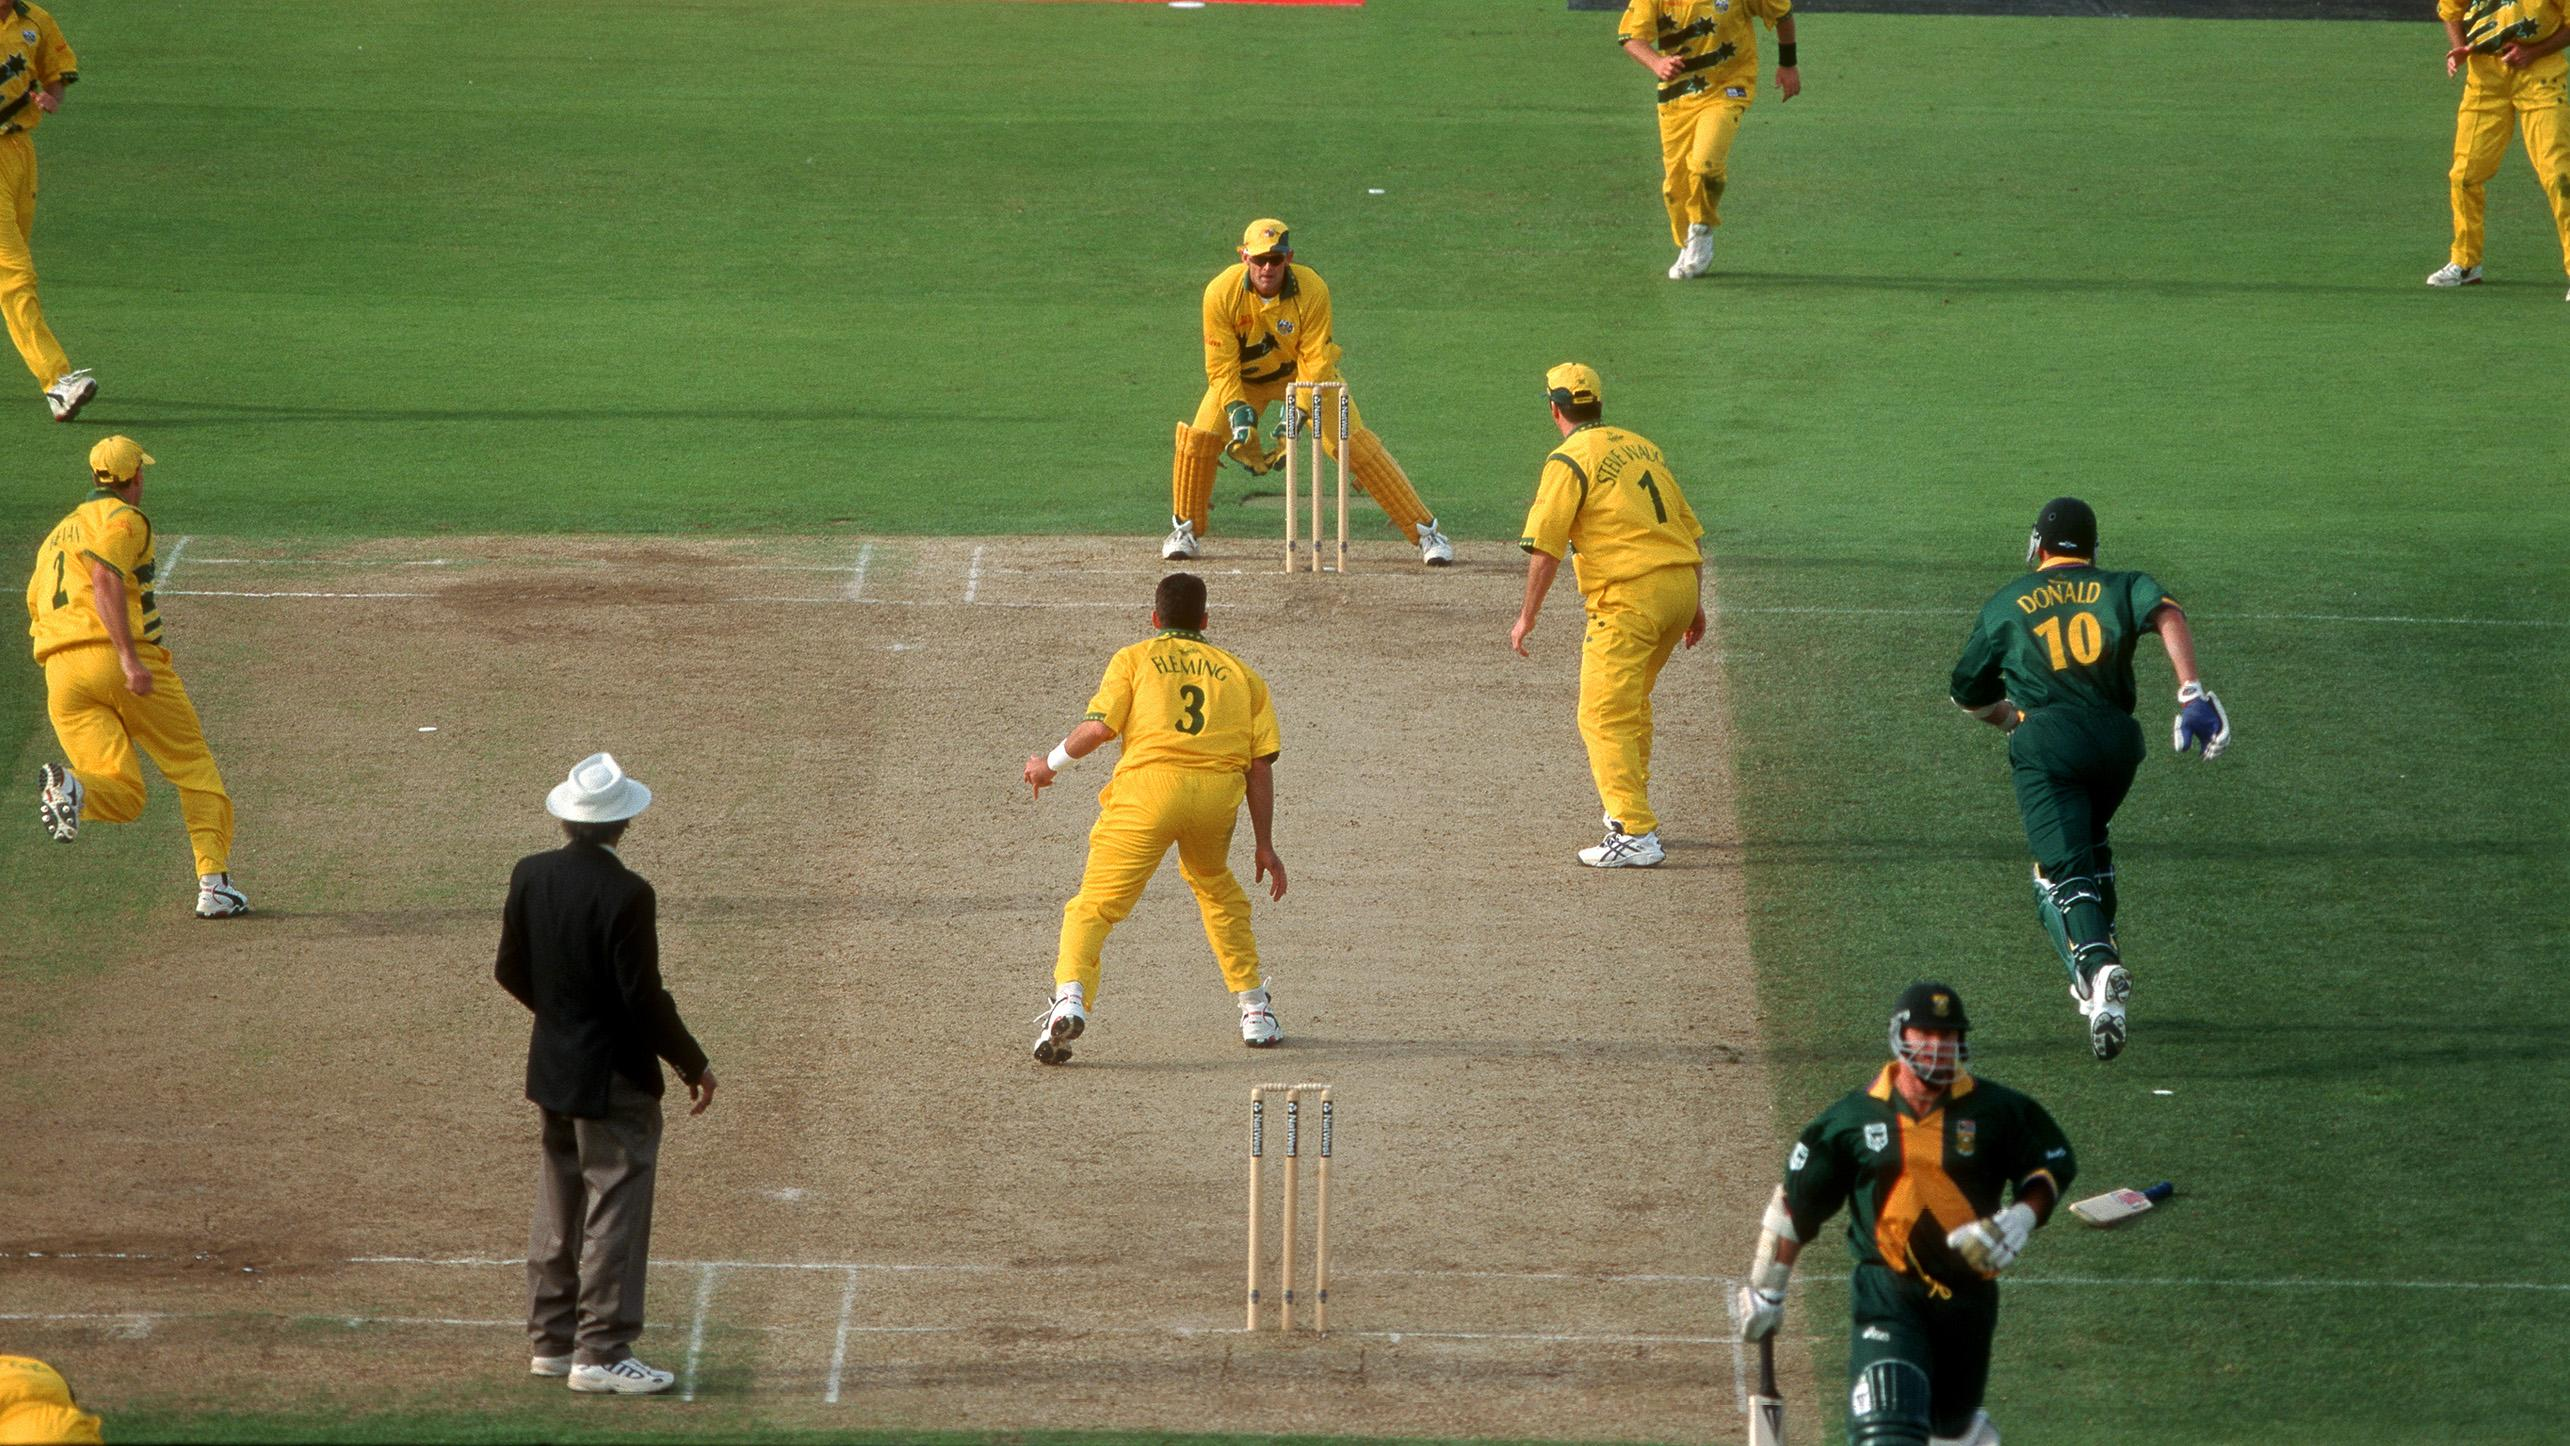 South Africa were destined to enter the Final of the 1999 CWC